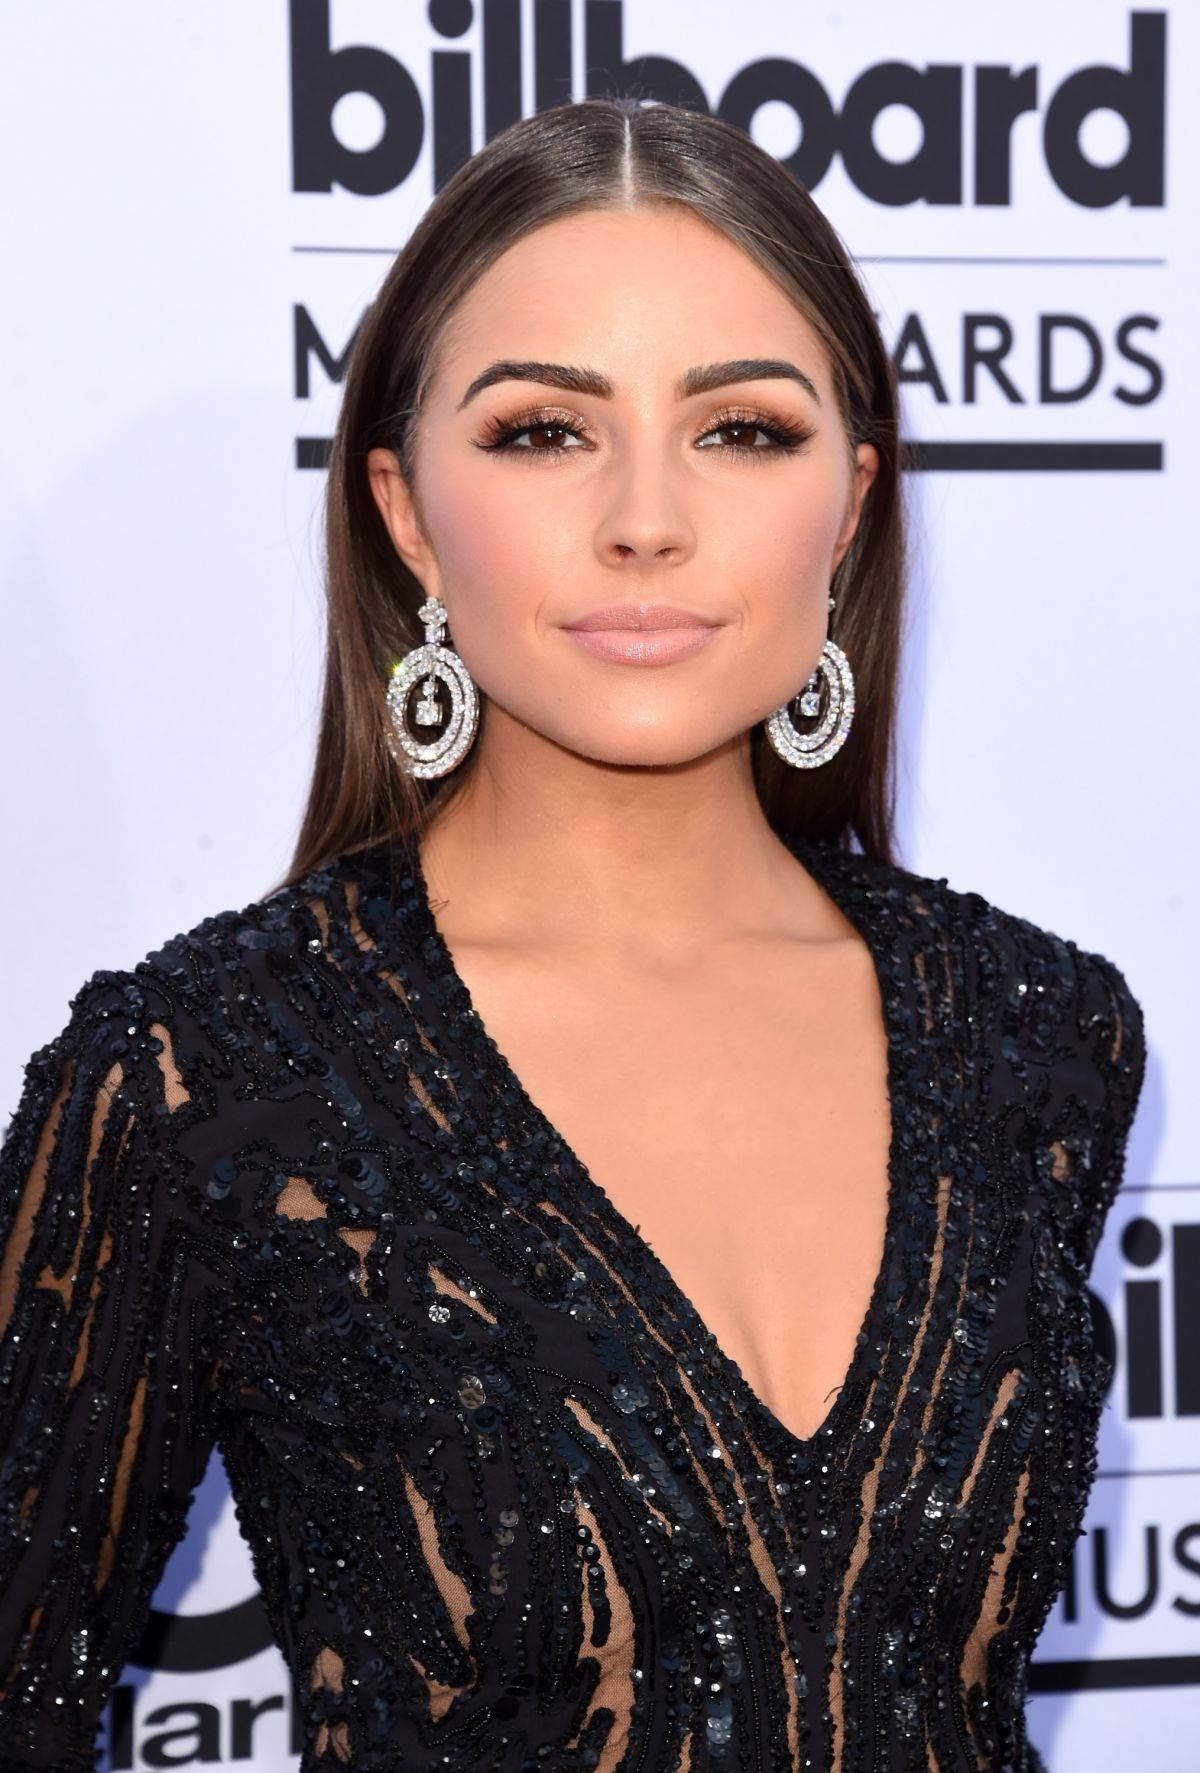 OLIVIA CULPO at 2015 Billboard Music Awards in Las Vegas